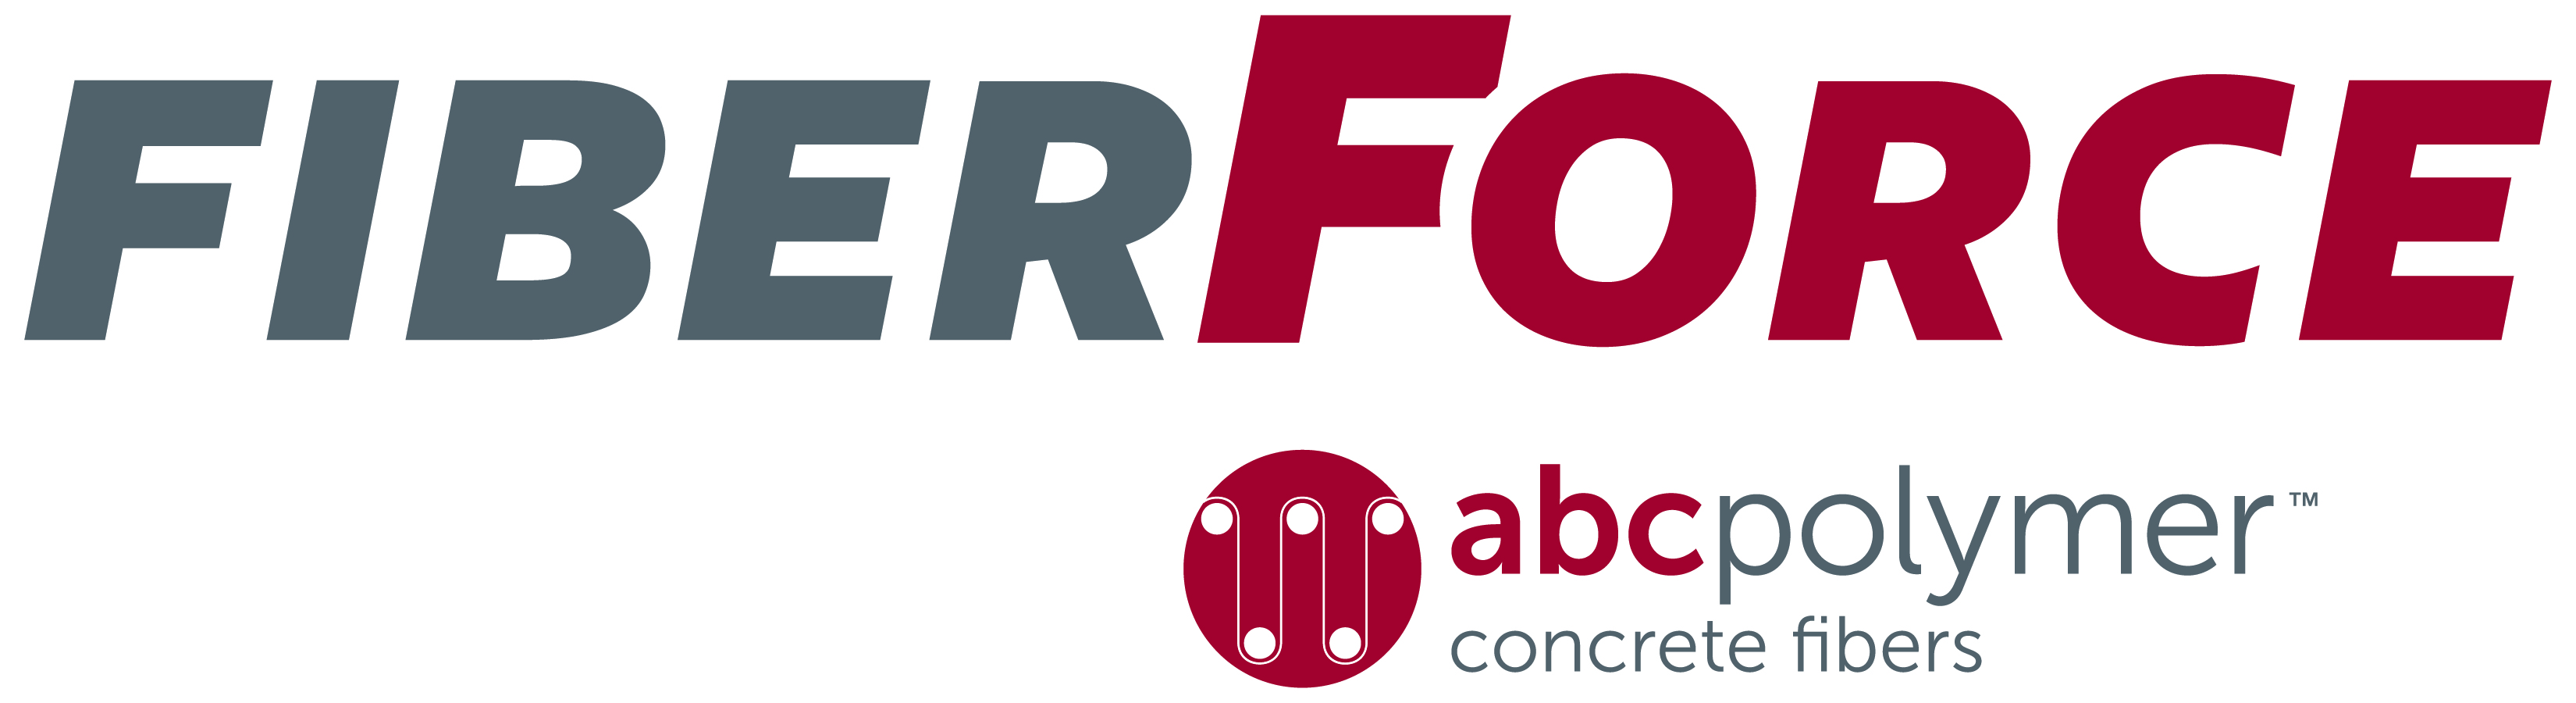 FiberForce by ABC Polymer Industries